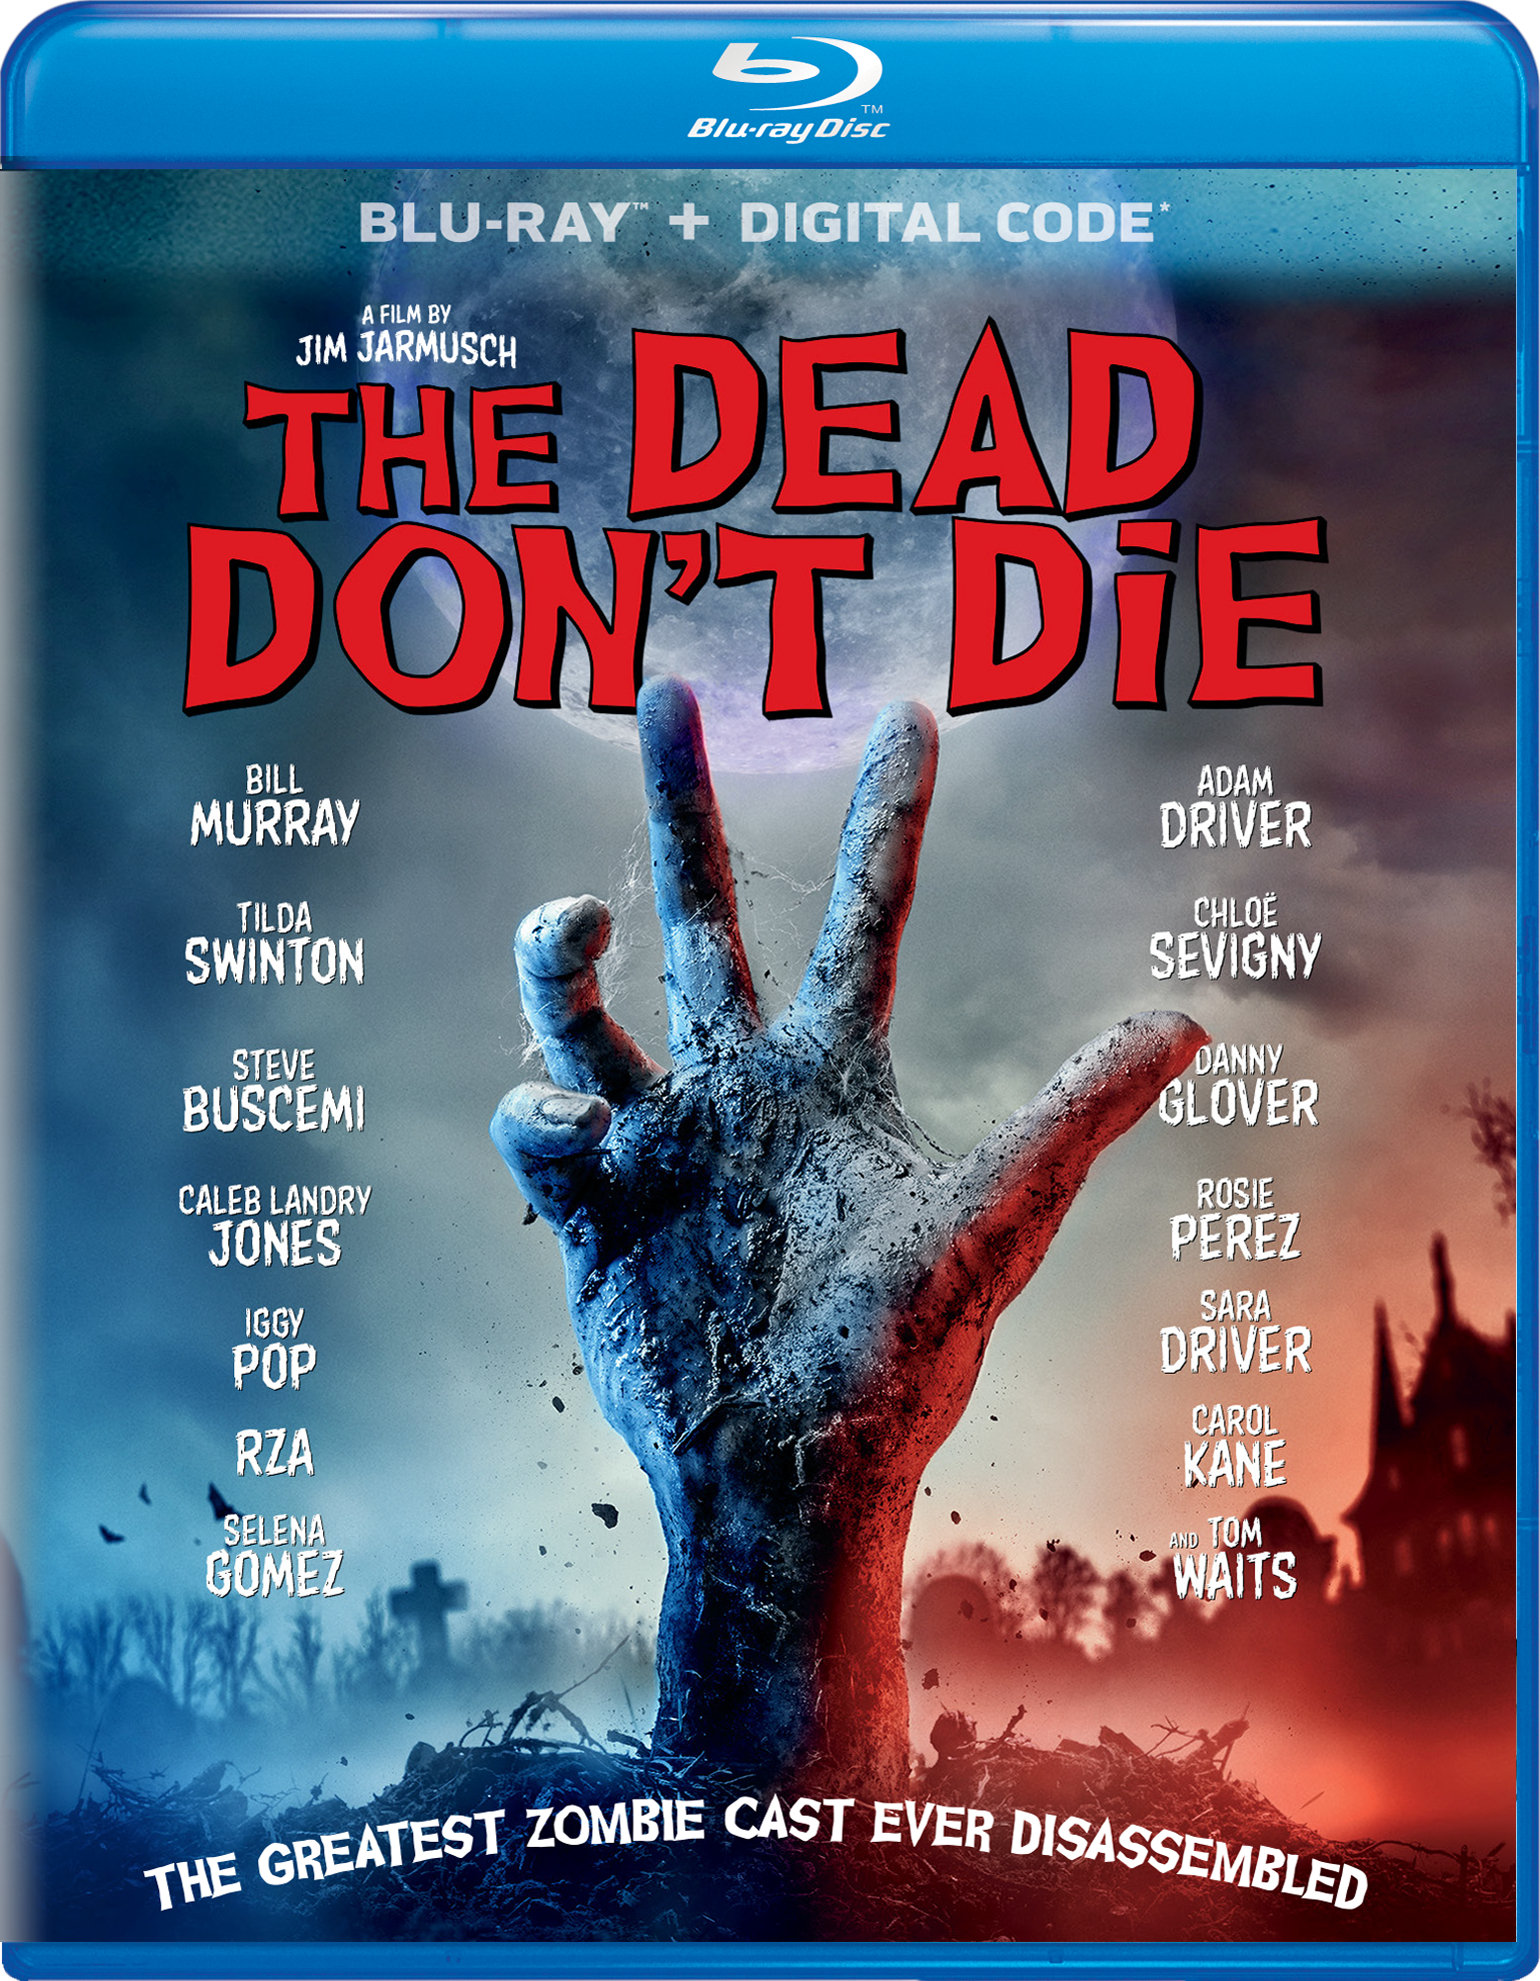 The Dead Dont Die (2019) poster image